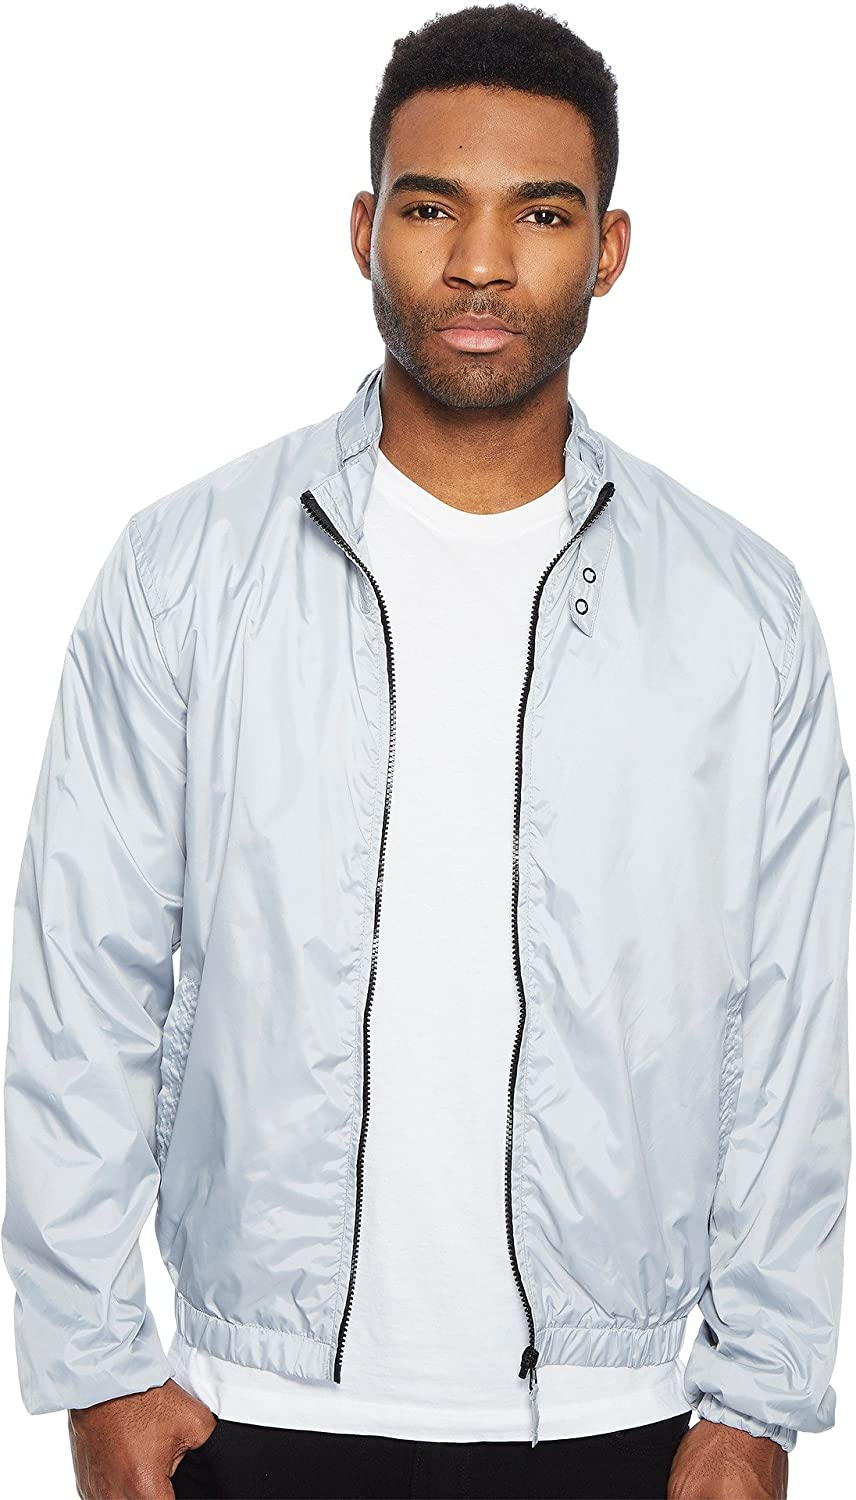 Members Only OUTERWEAR メンズ B07776S568 X-Large|ライトグレーストライプ ライトグレーストライプ X-Large